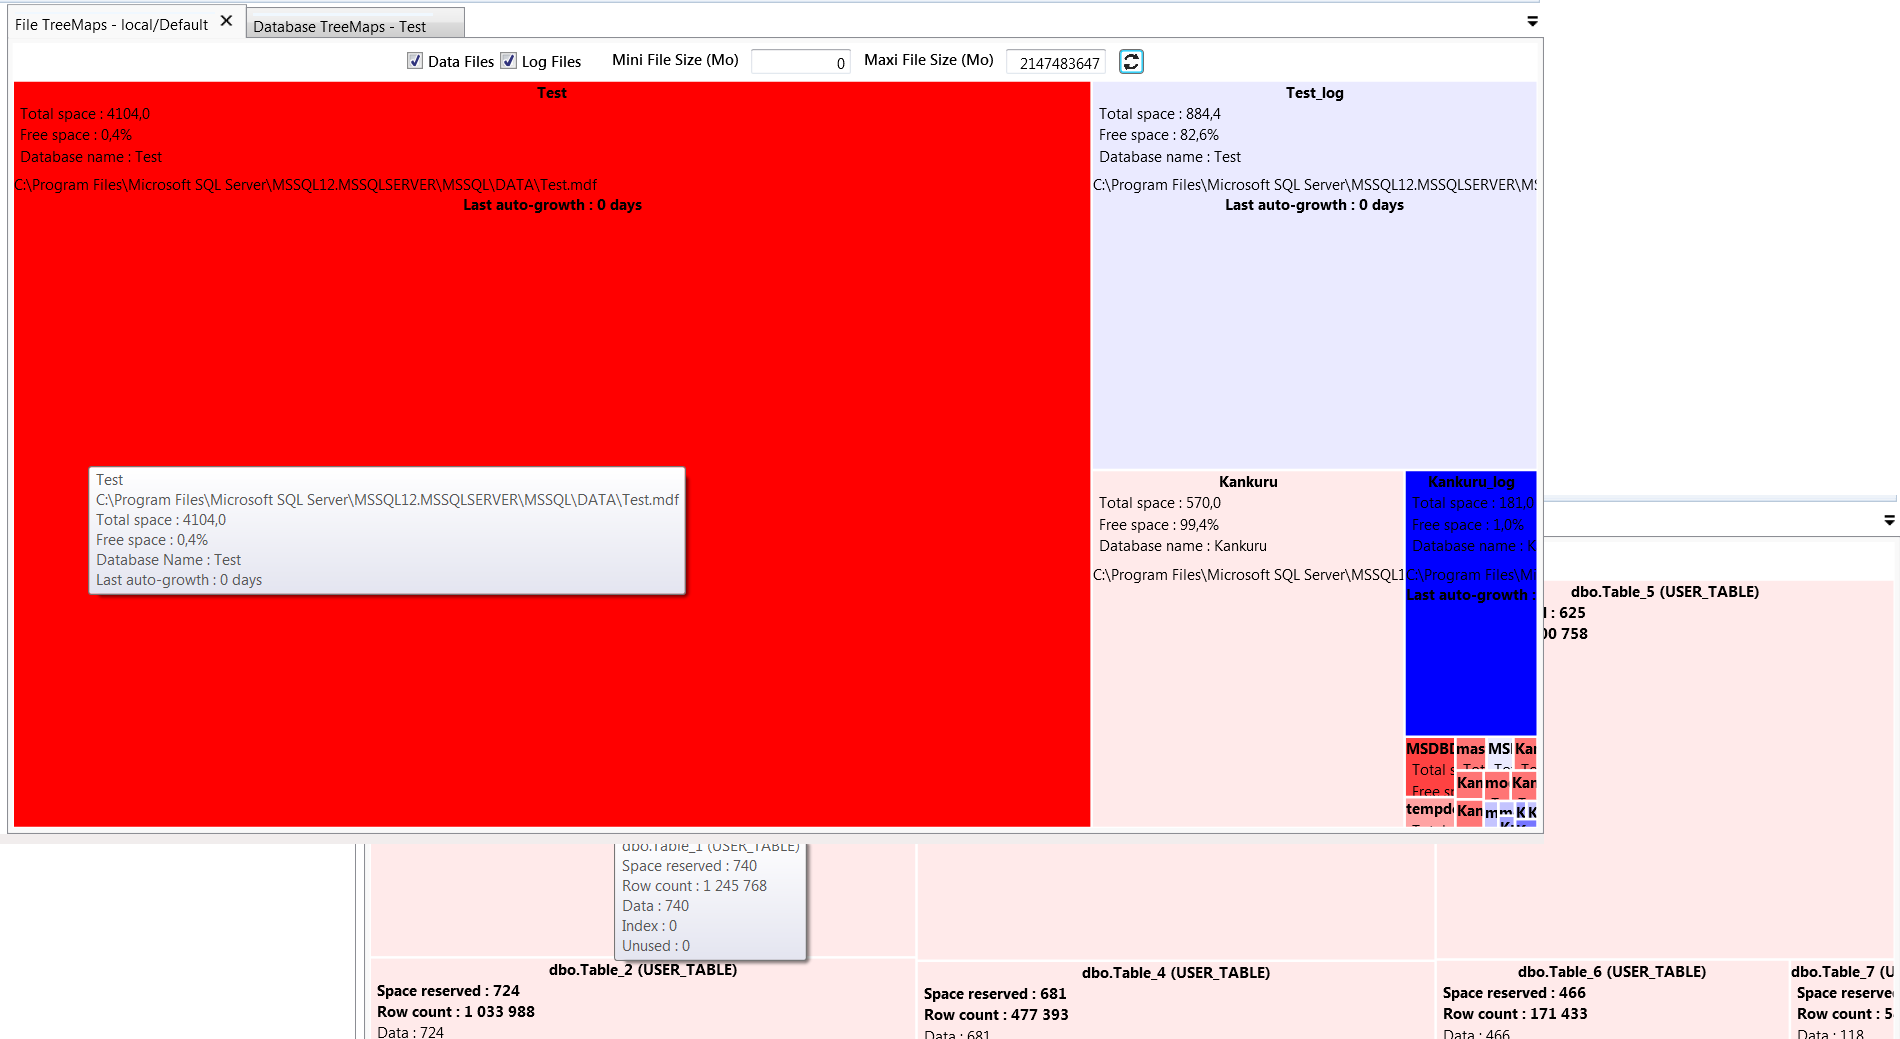 File treemap to database treemap